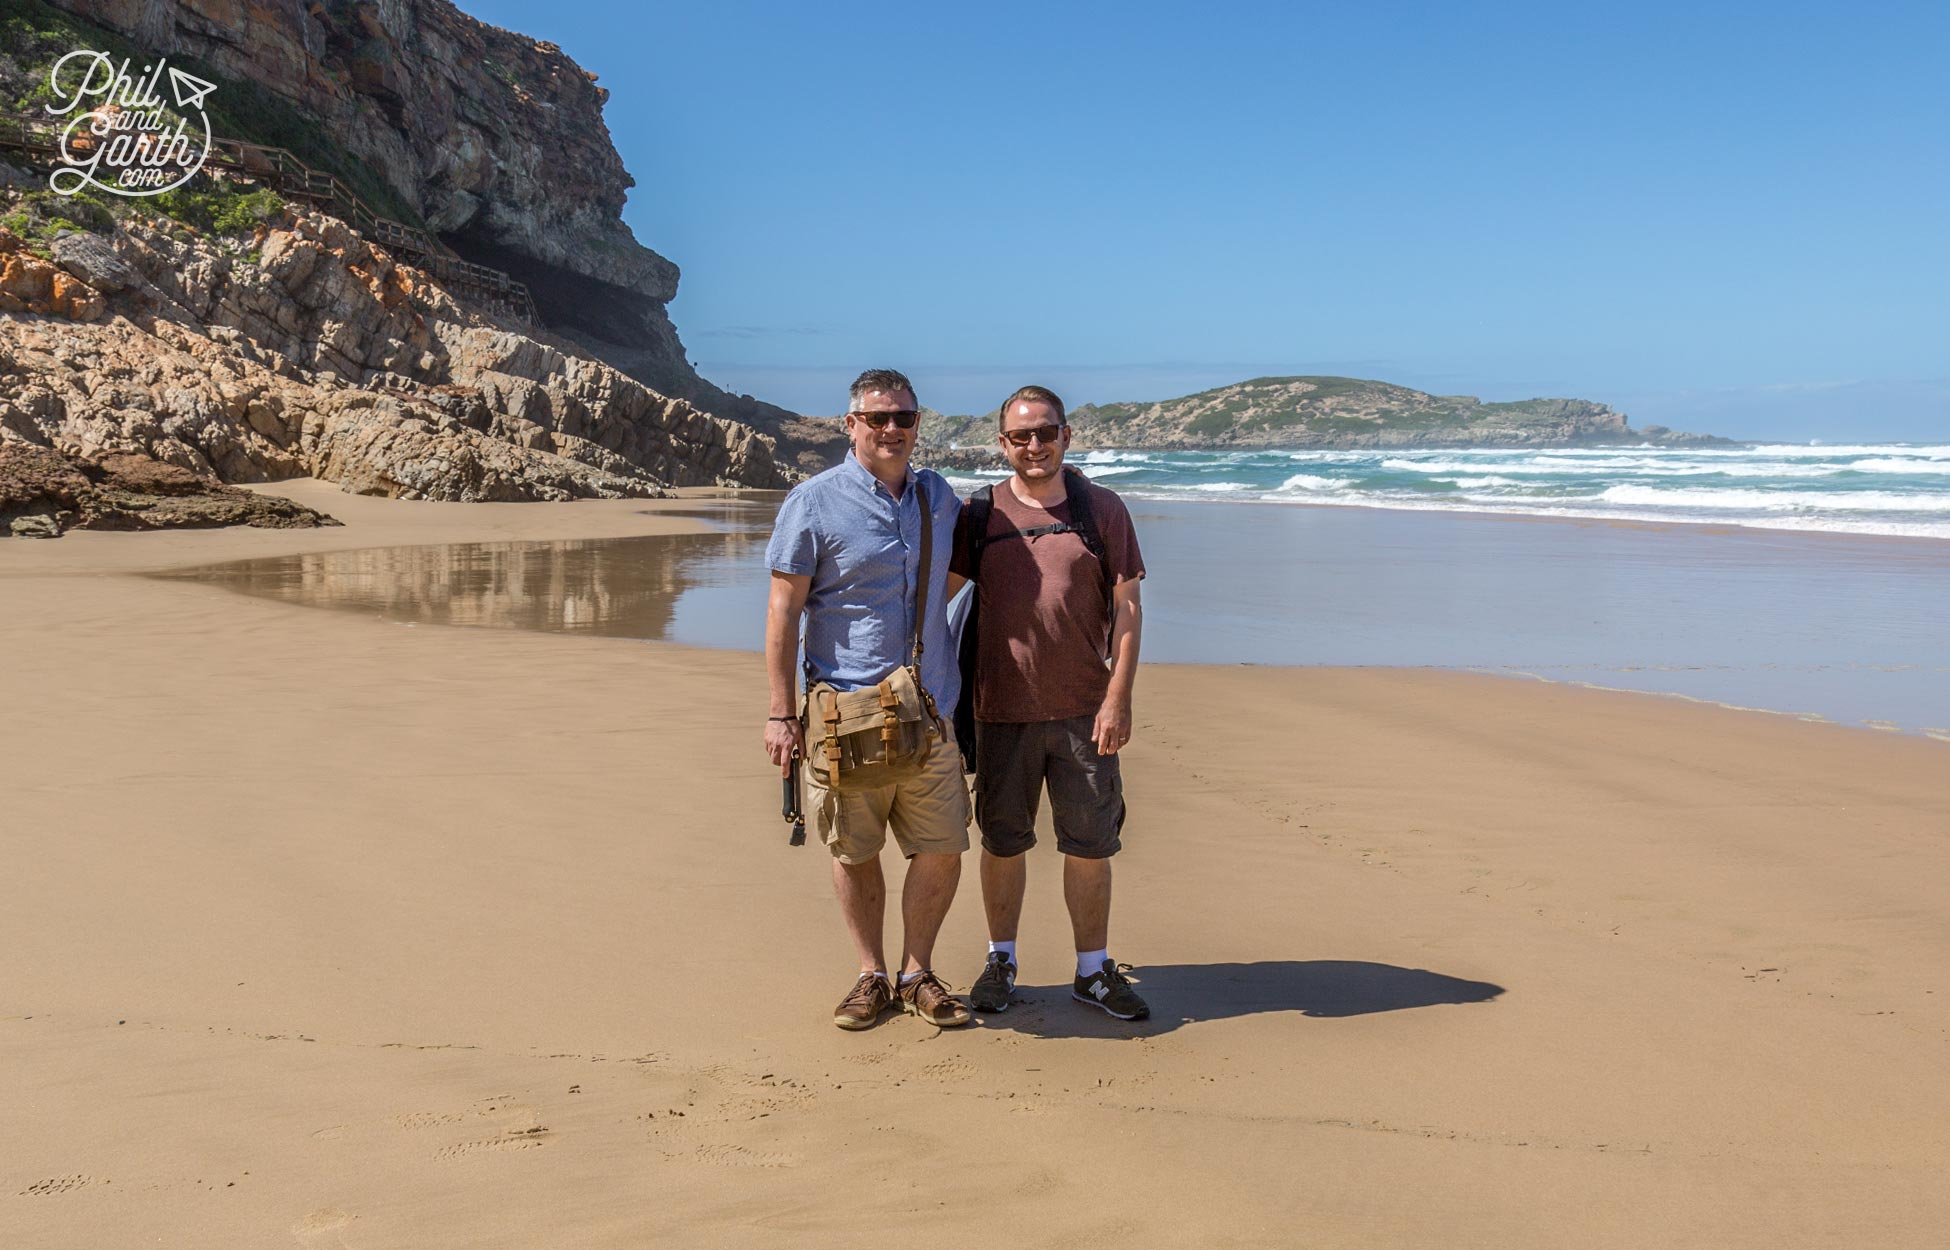 The Garden Route - Phil and Garth on the beach at Robberg Nature Reserve